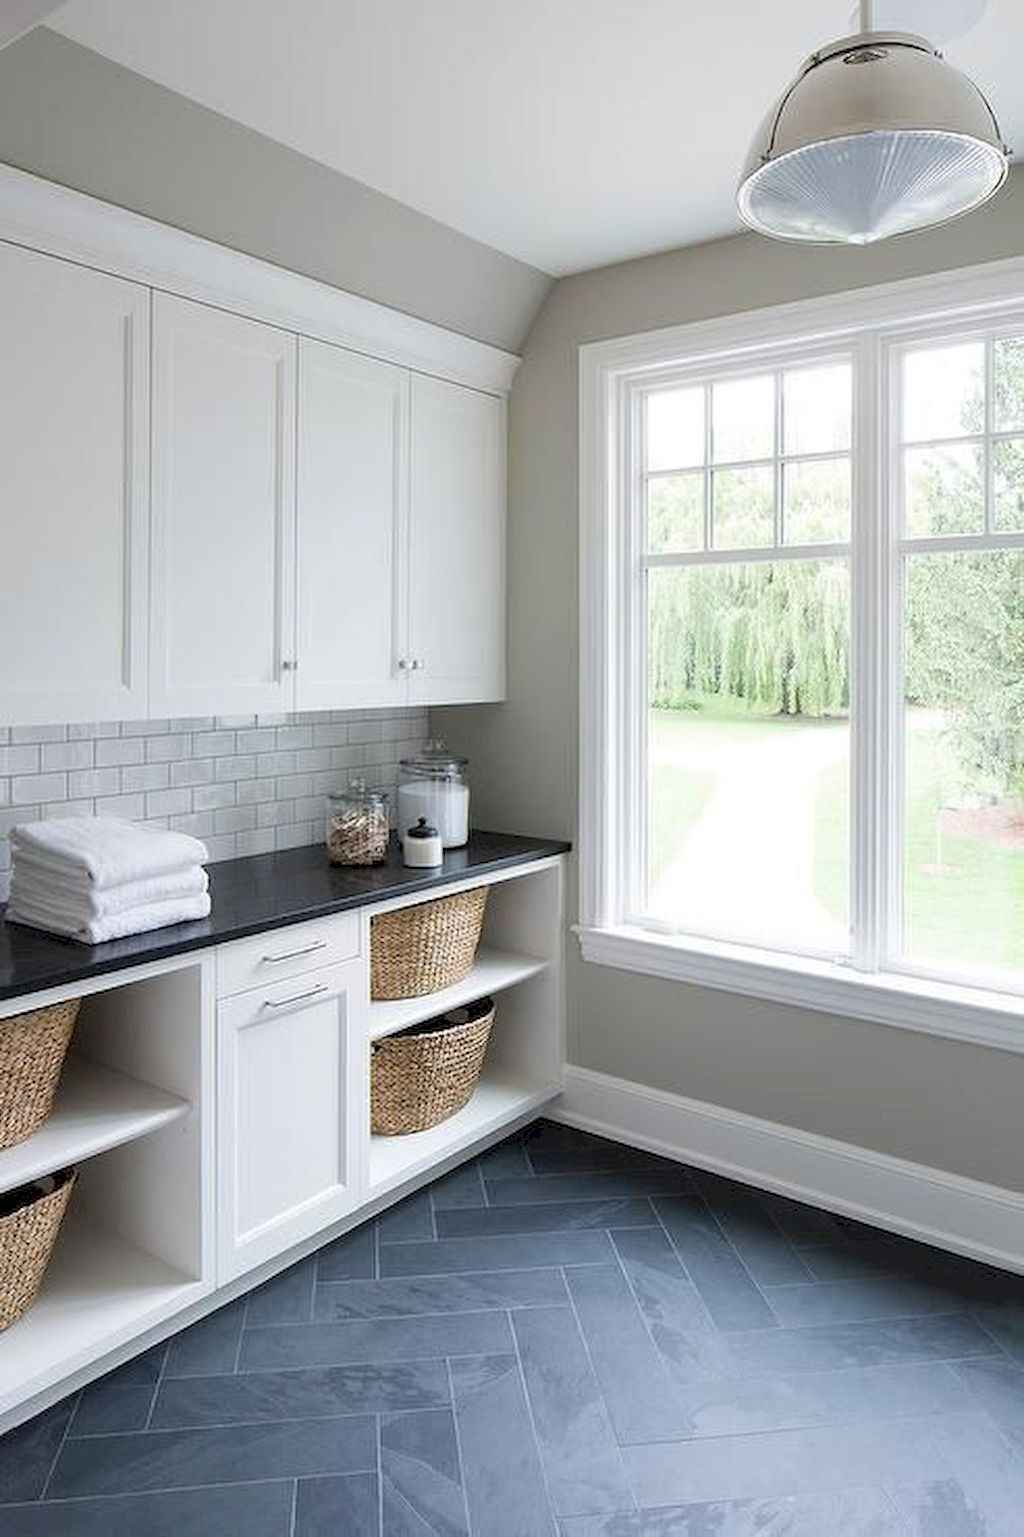 45 Rustic Farmhouse Laundry Room Design Ideas and Makeover (6)